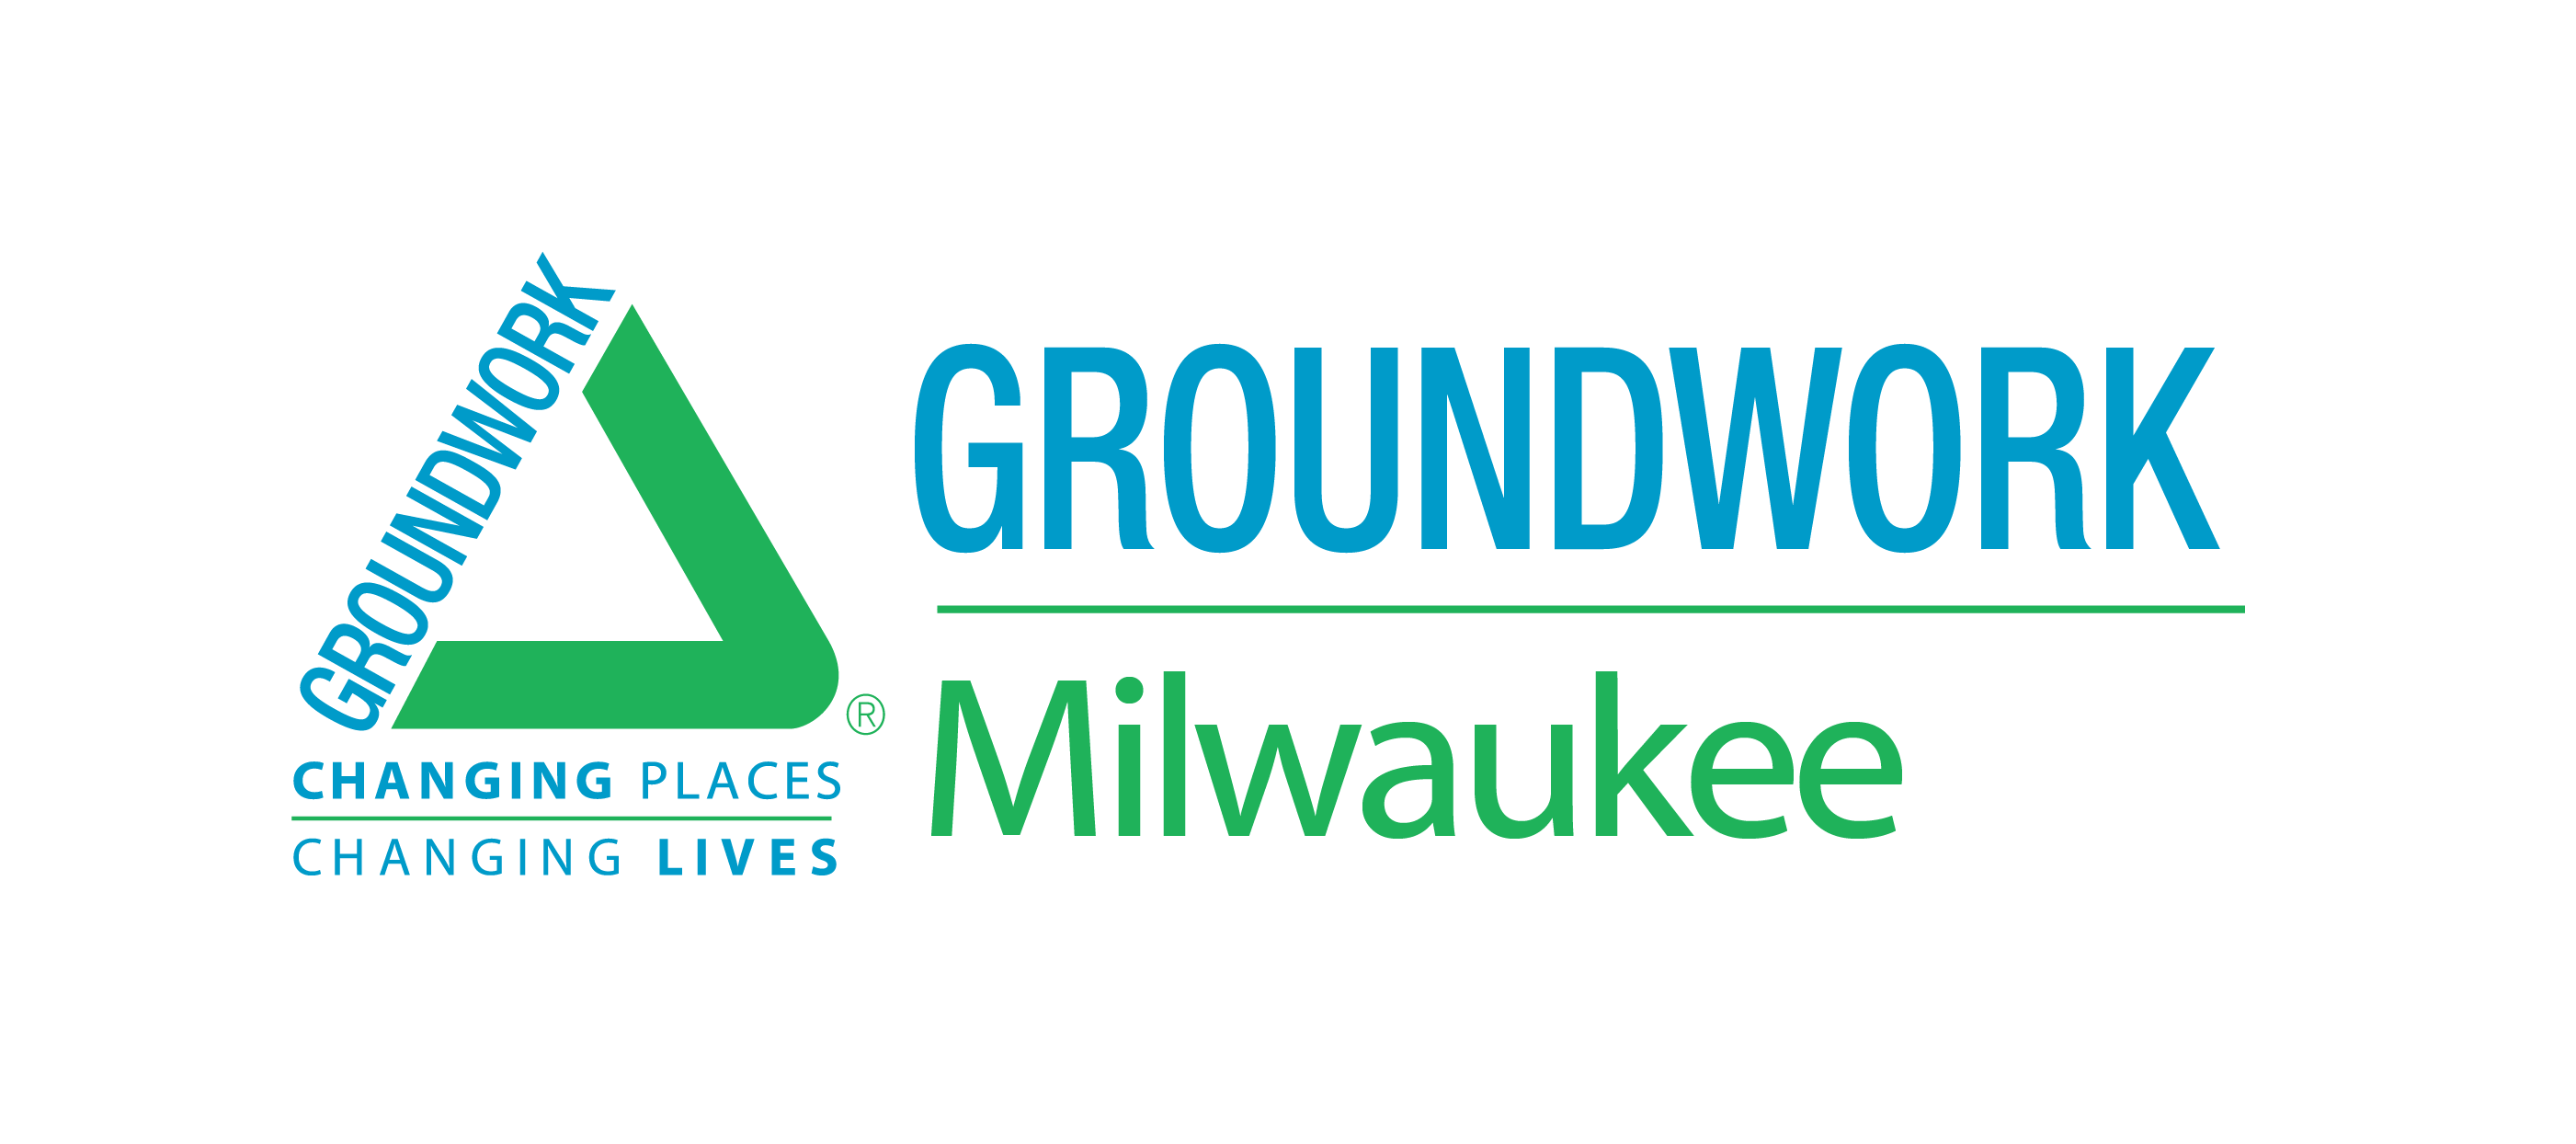 Groundwork Milwaukee